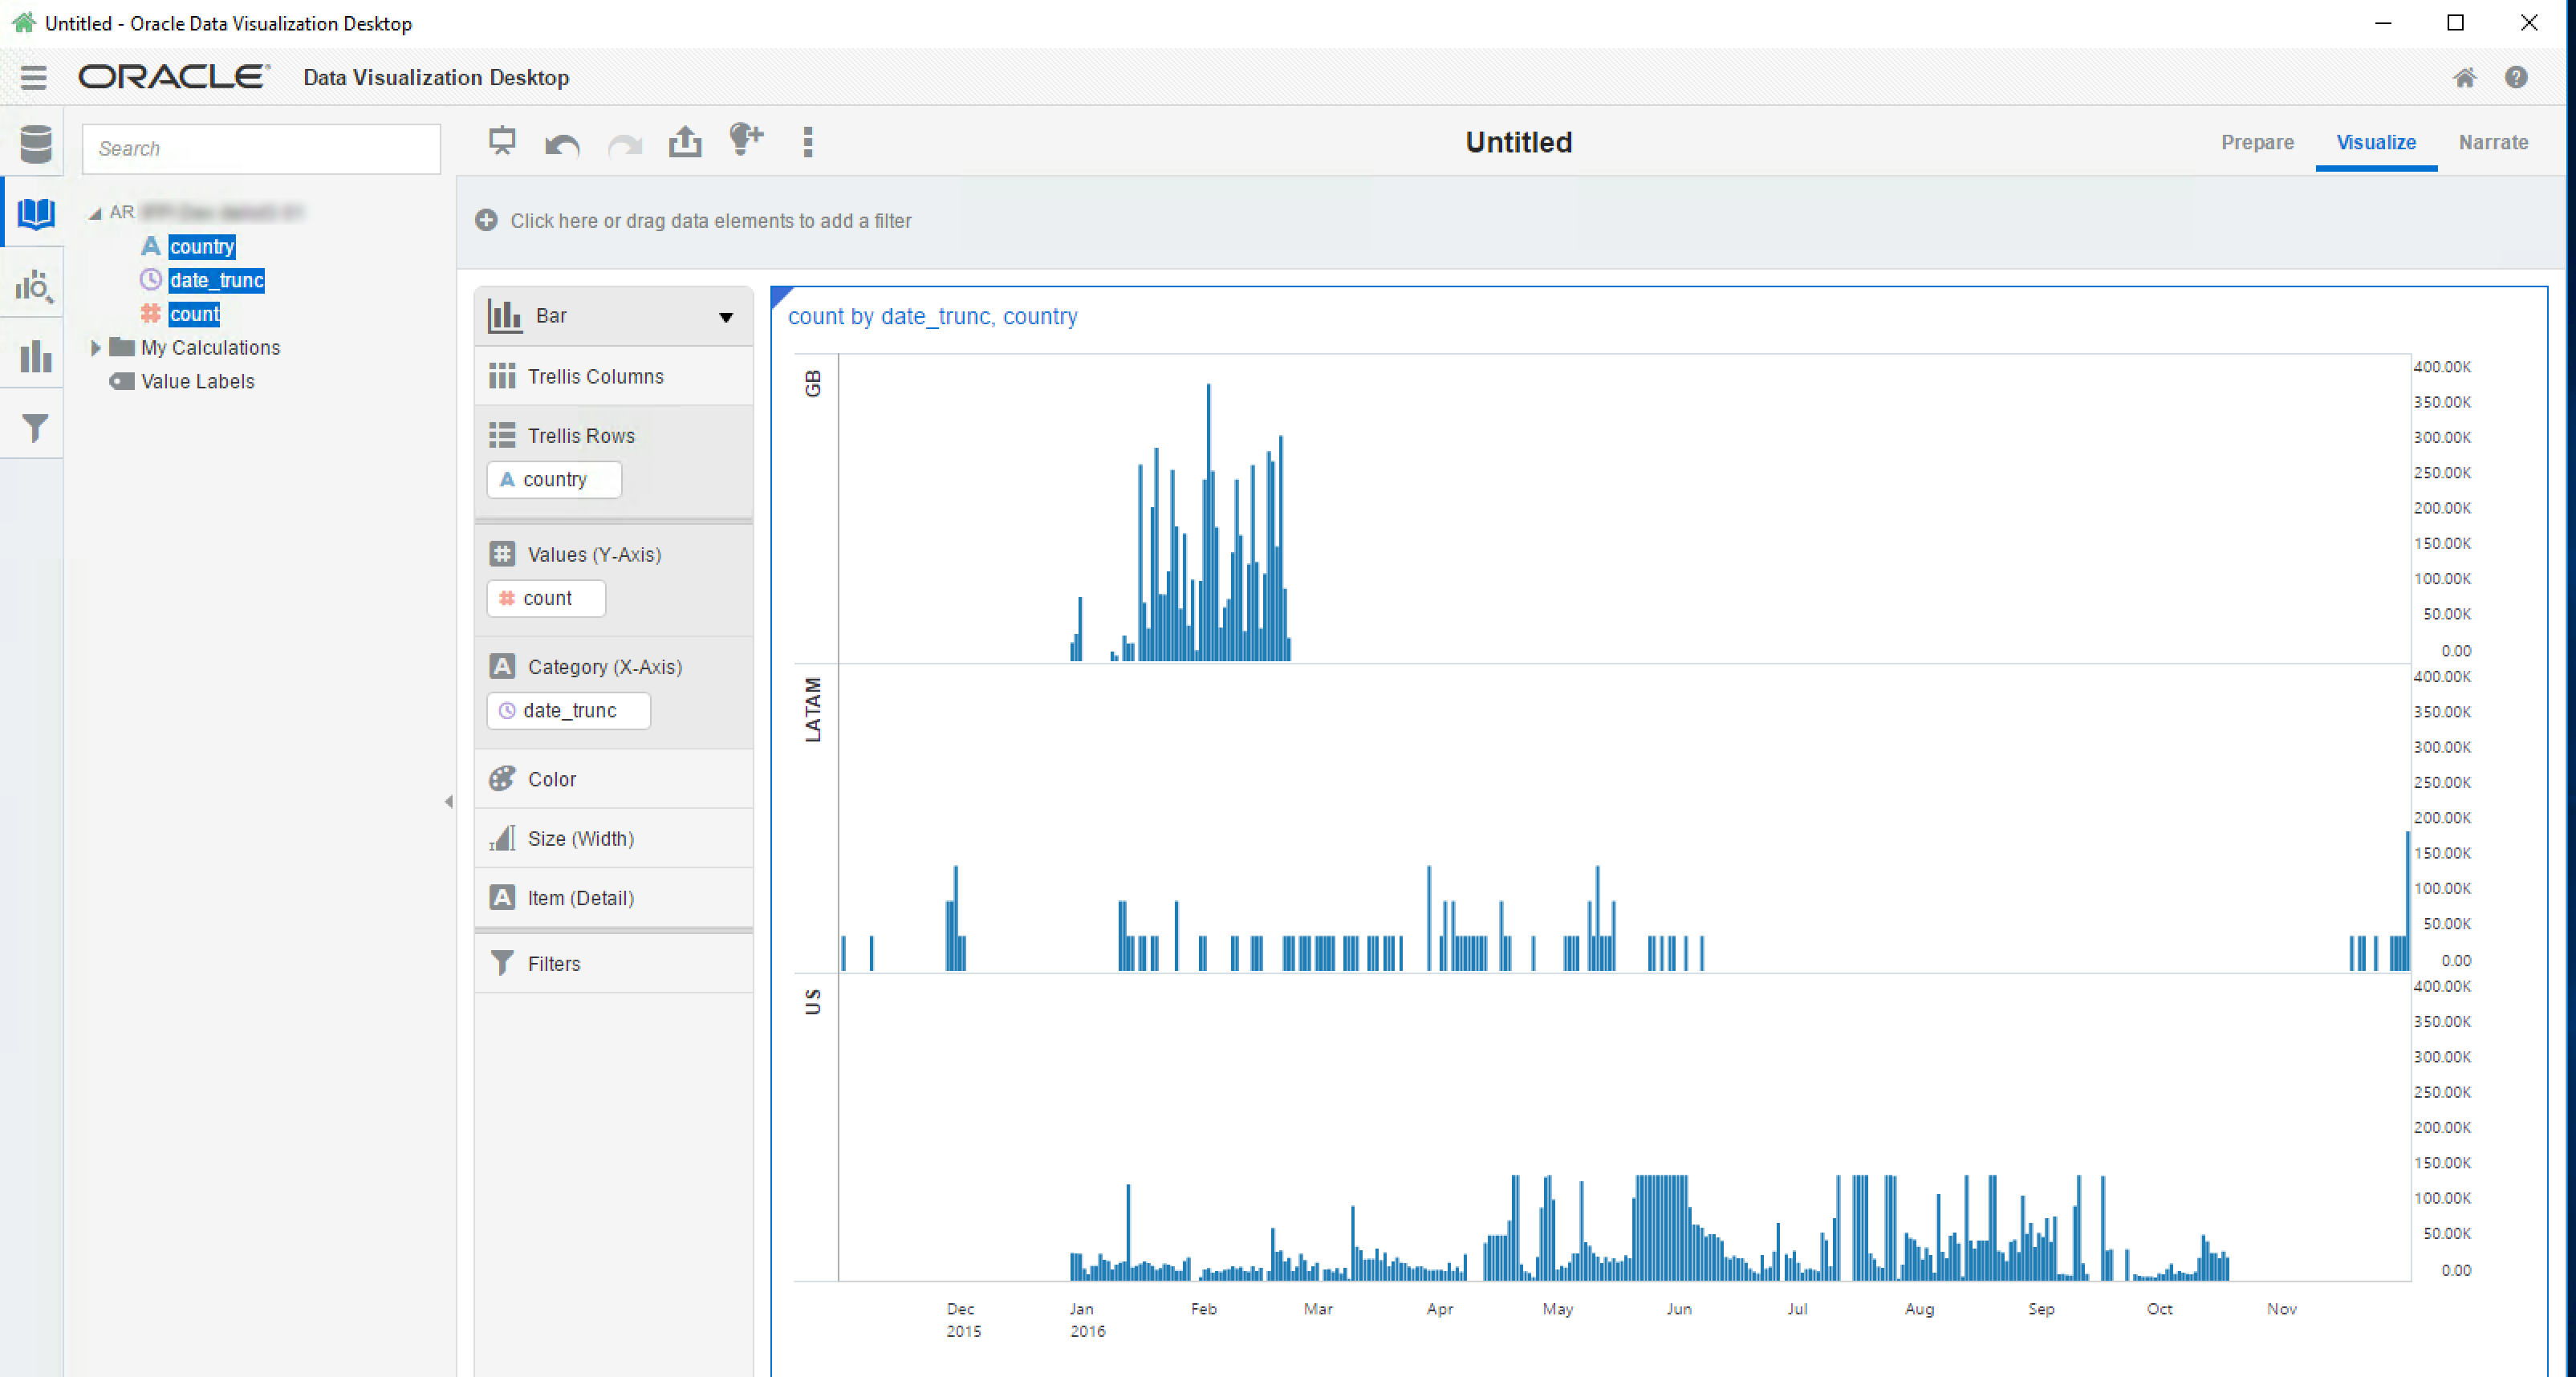 ETL Offload with Spark and Amazon EMR - Part 4 - Analysing the Data